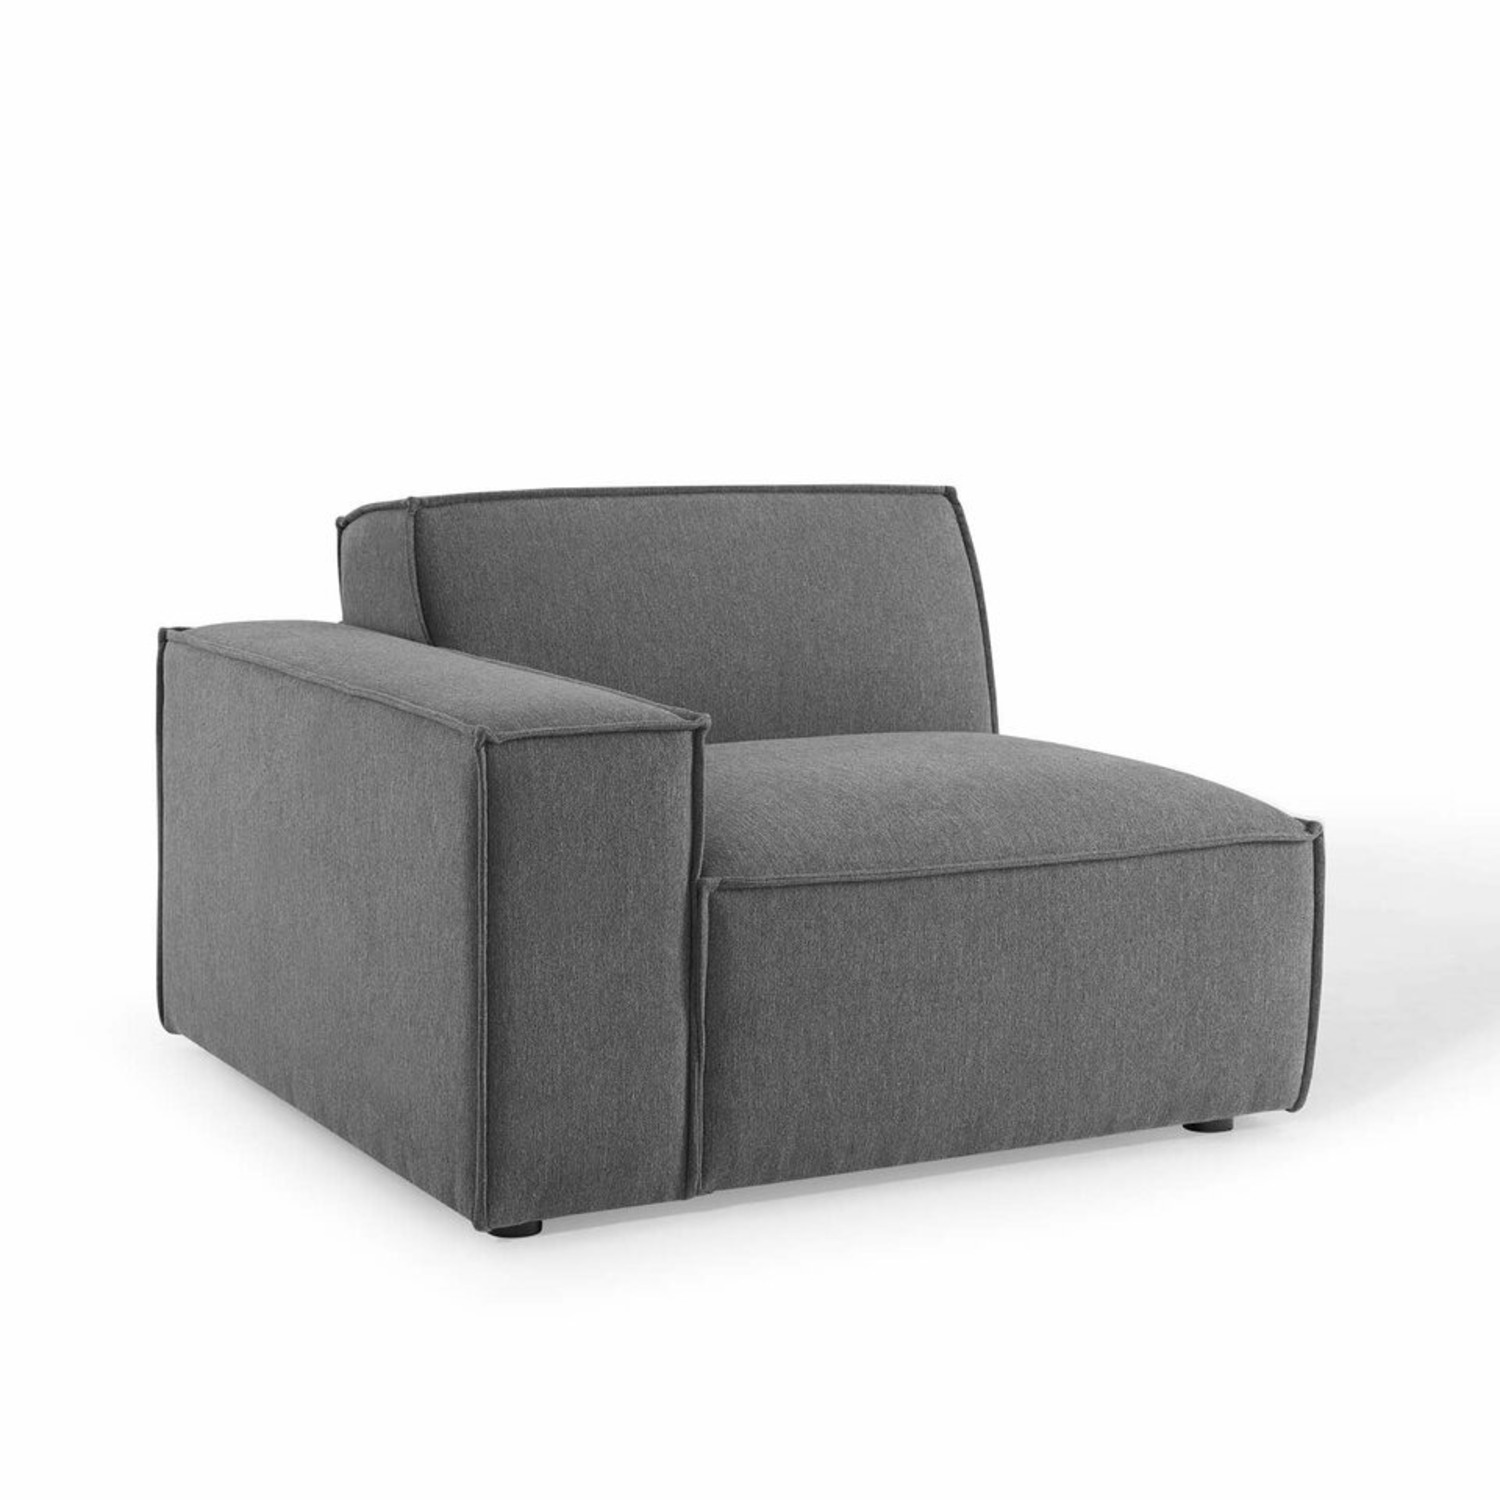 6-Piece Sectional Sofa In Charcoal Upholstery - image-4